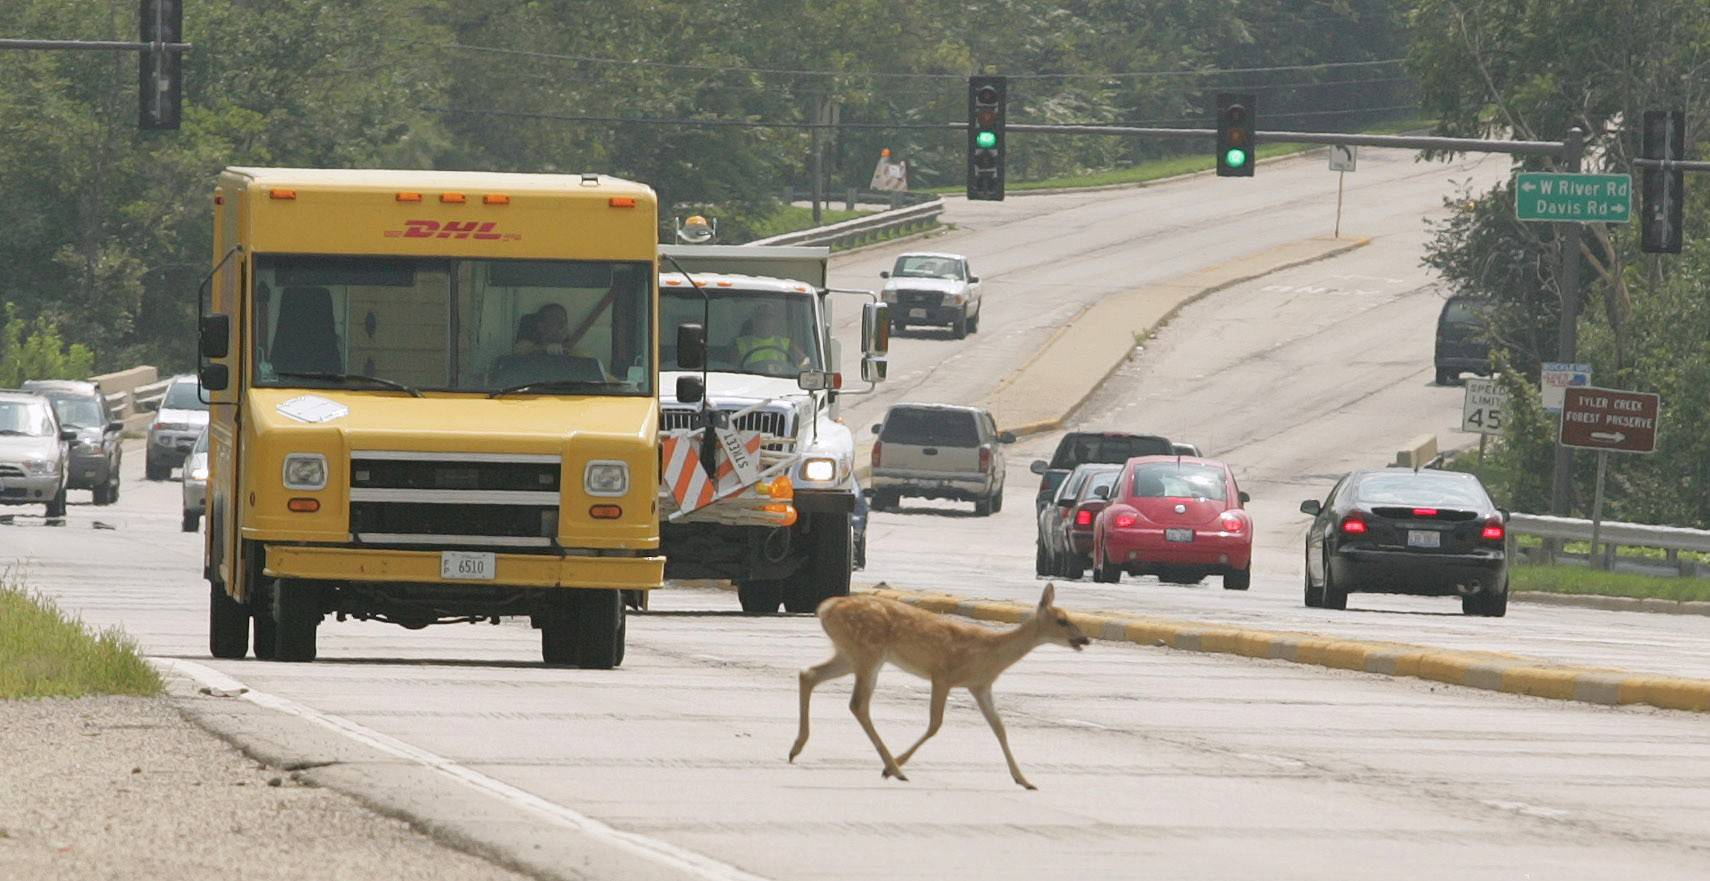 A doe crosses Route 31 in Elgin. Female deer are on the move this time of year, experts say.